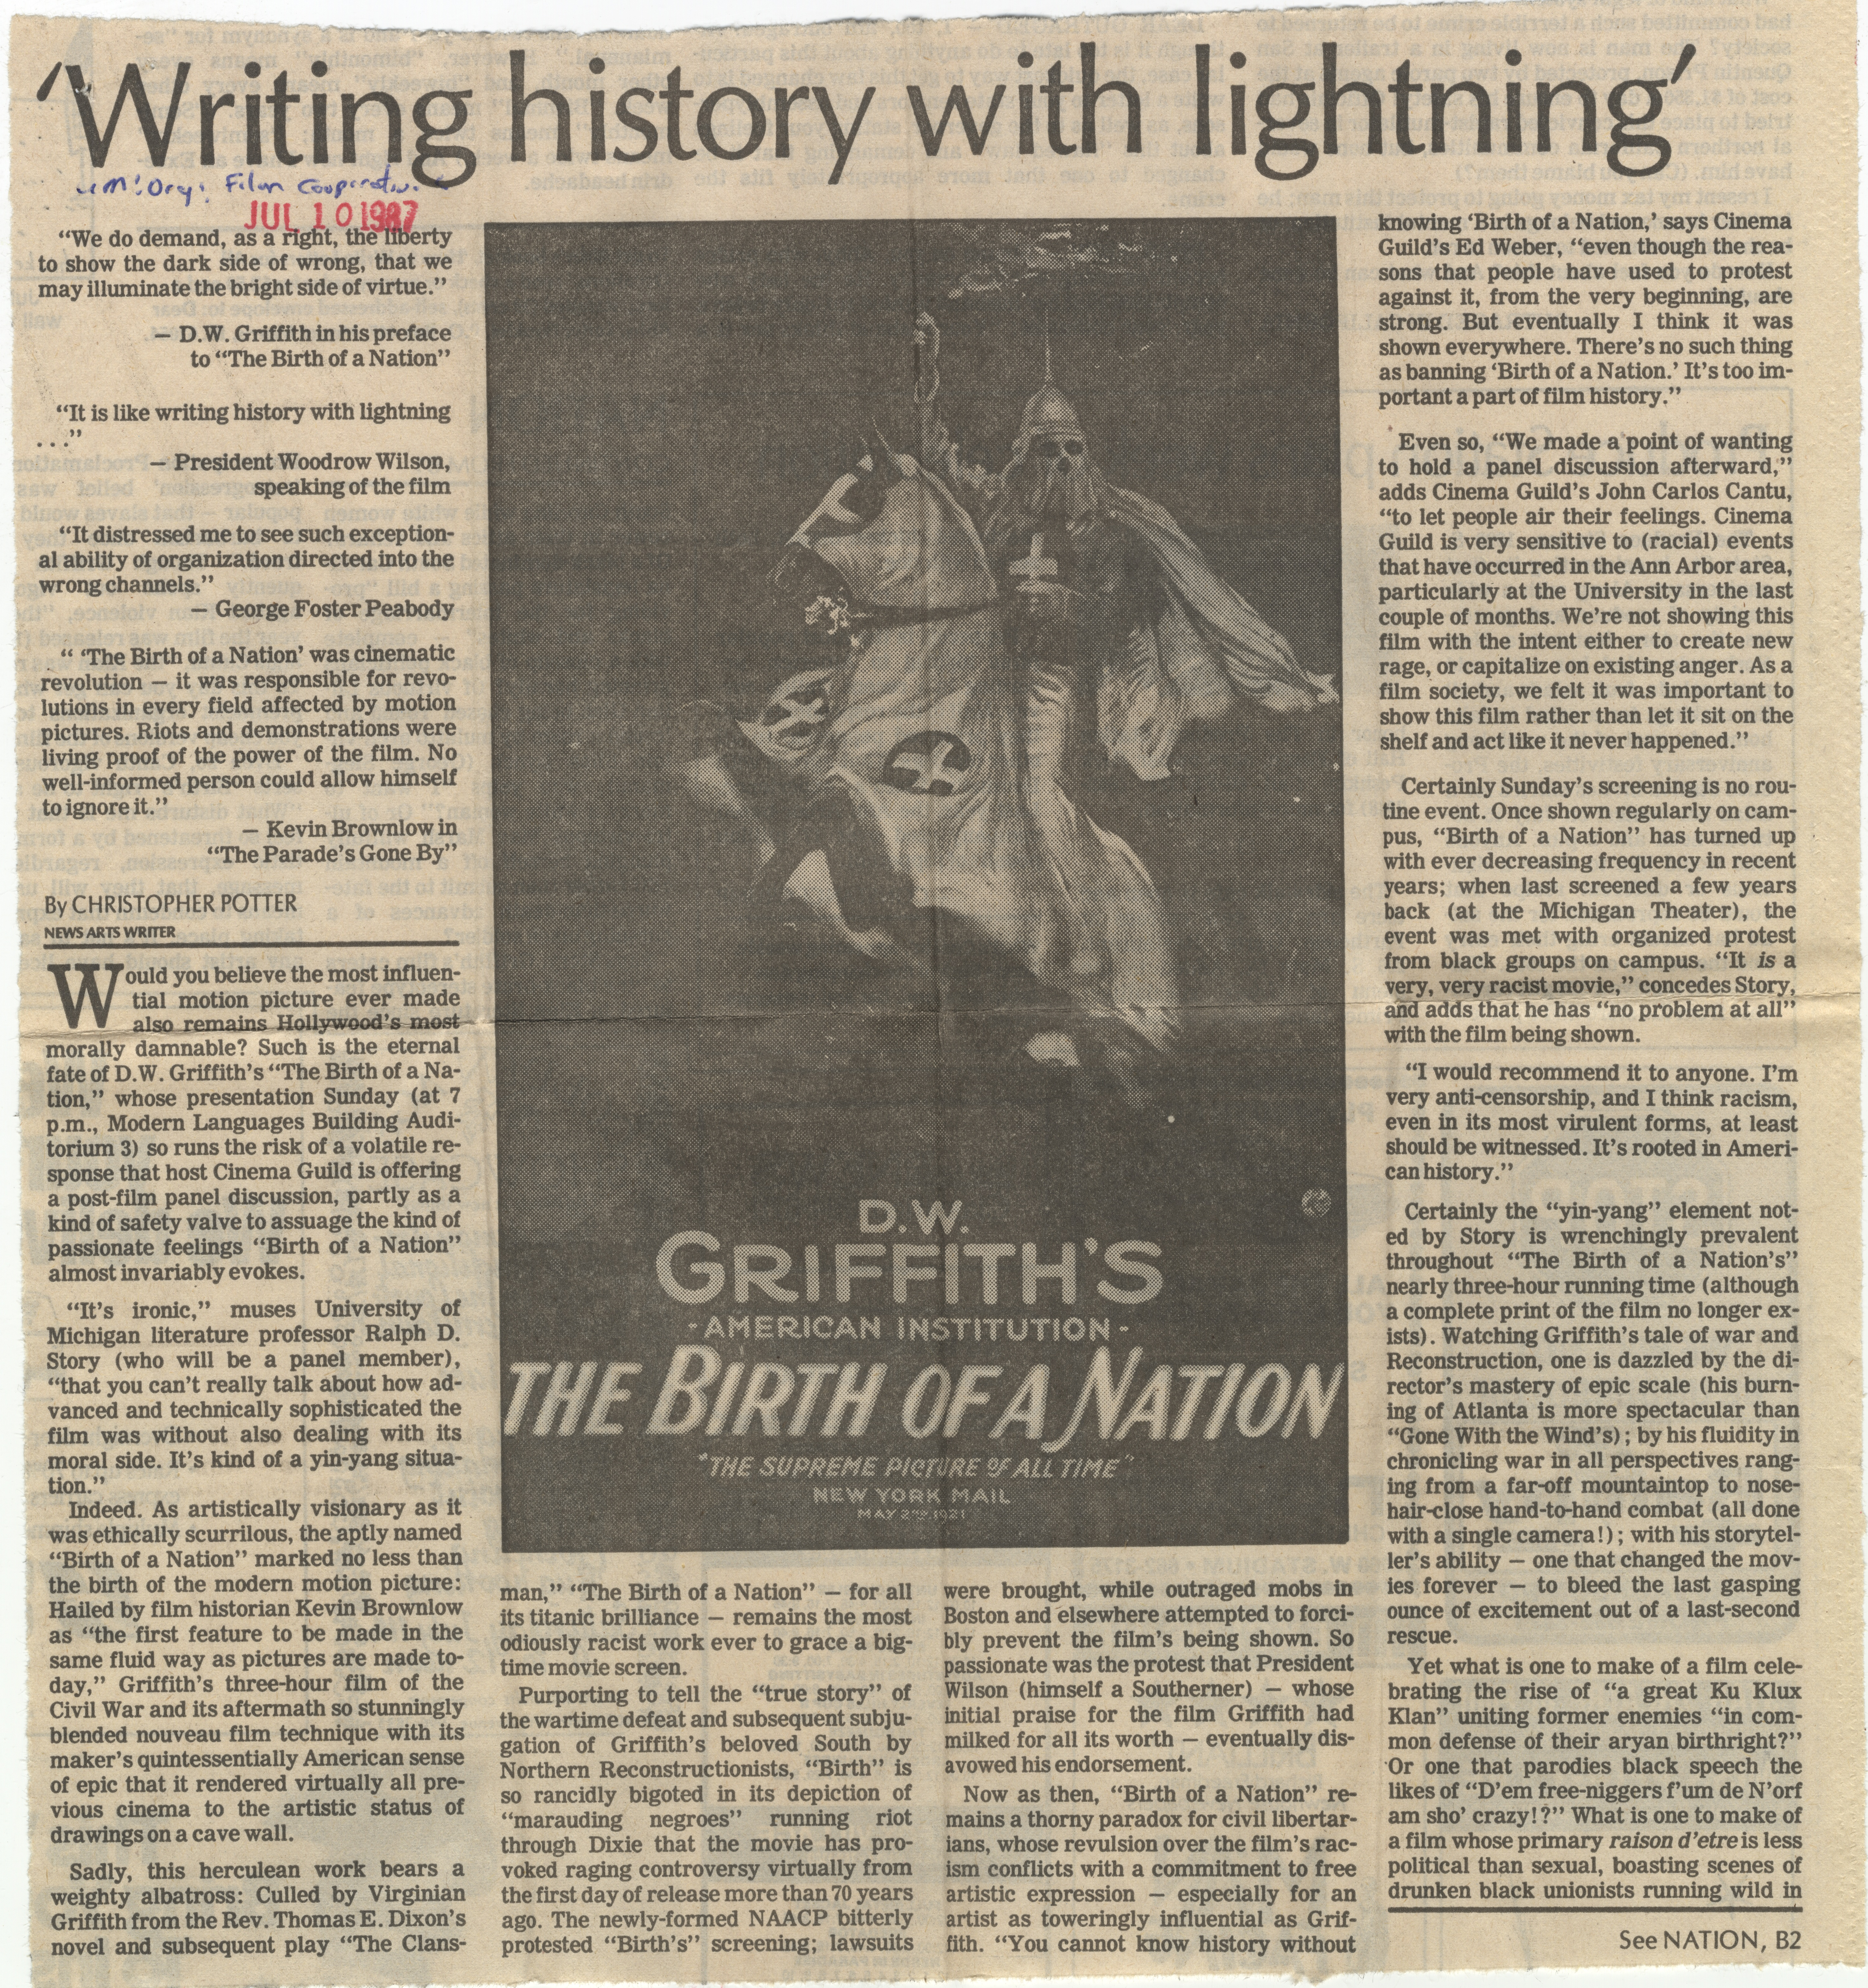 'Writing history with lightning' image